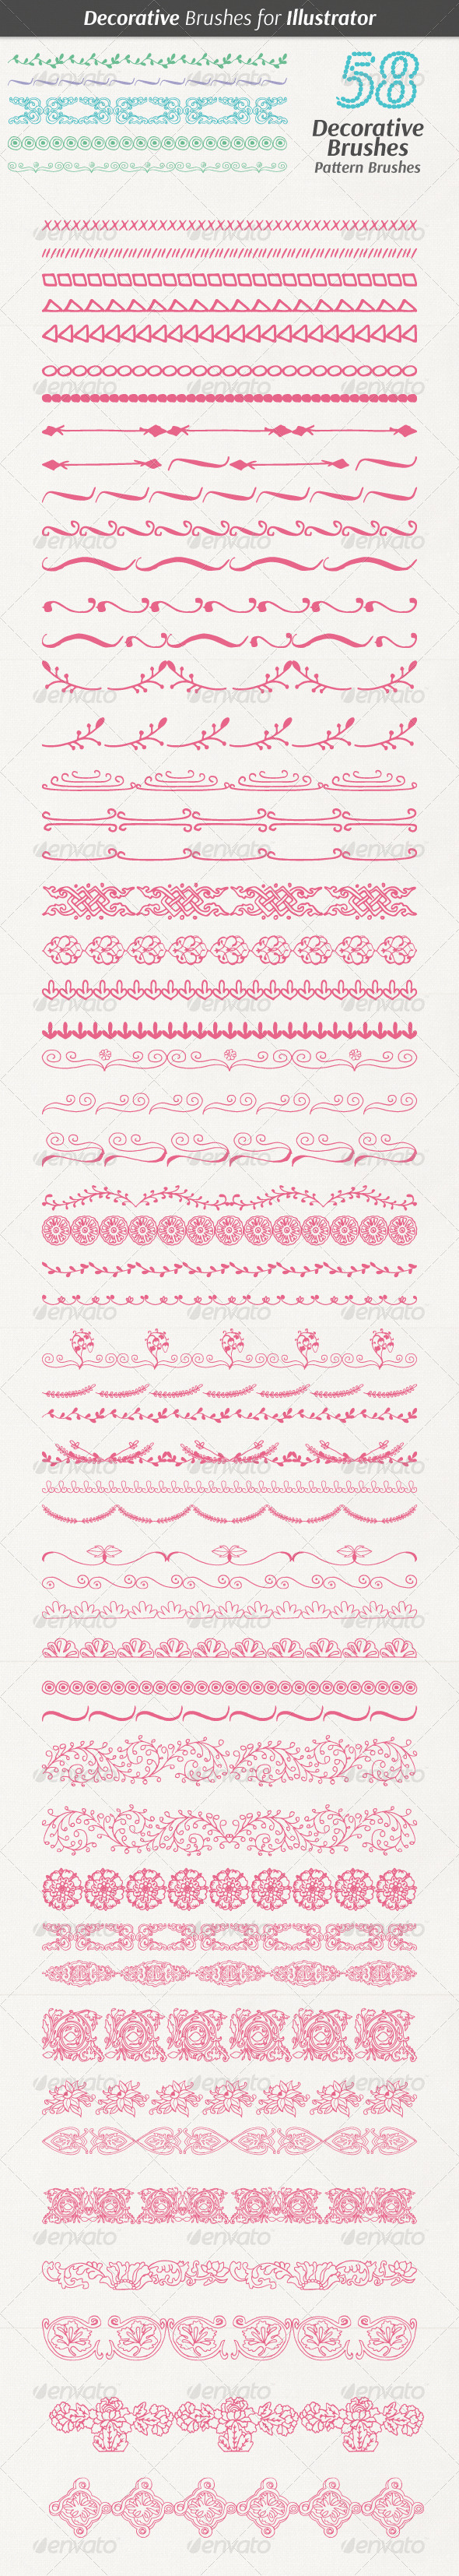 GraphicRiver Decorative Hand Drawn Brushes 7644302